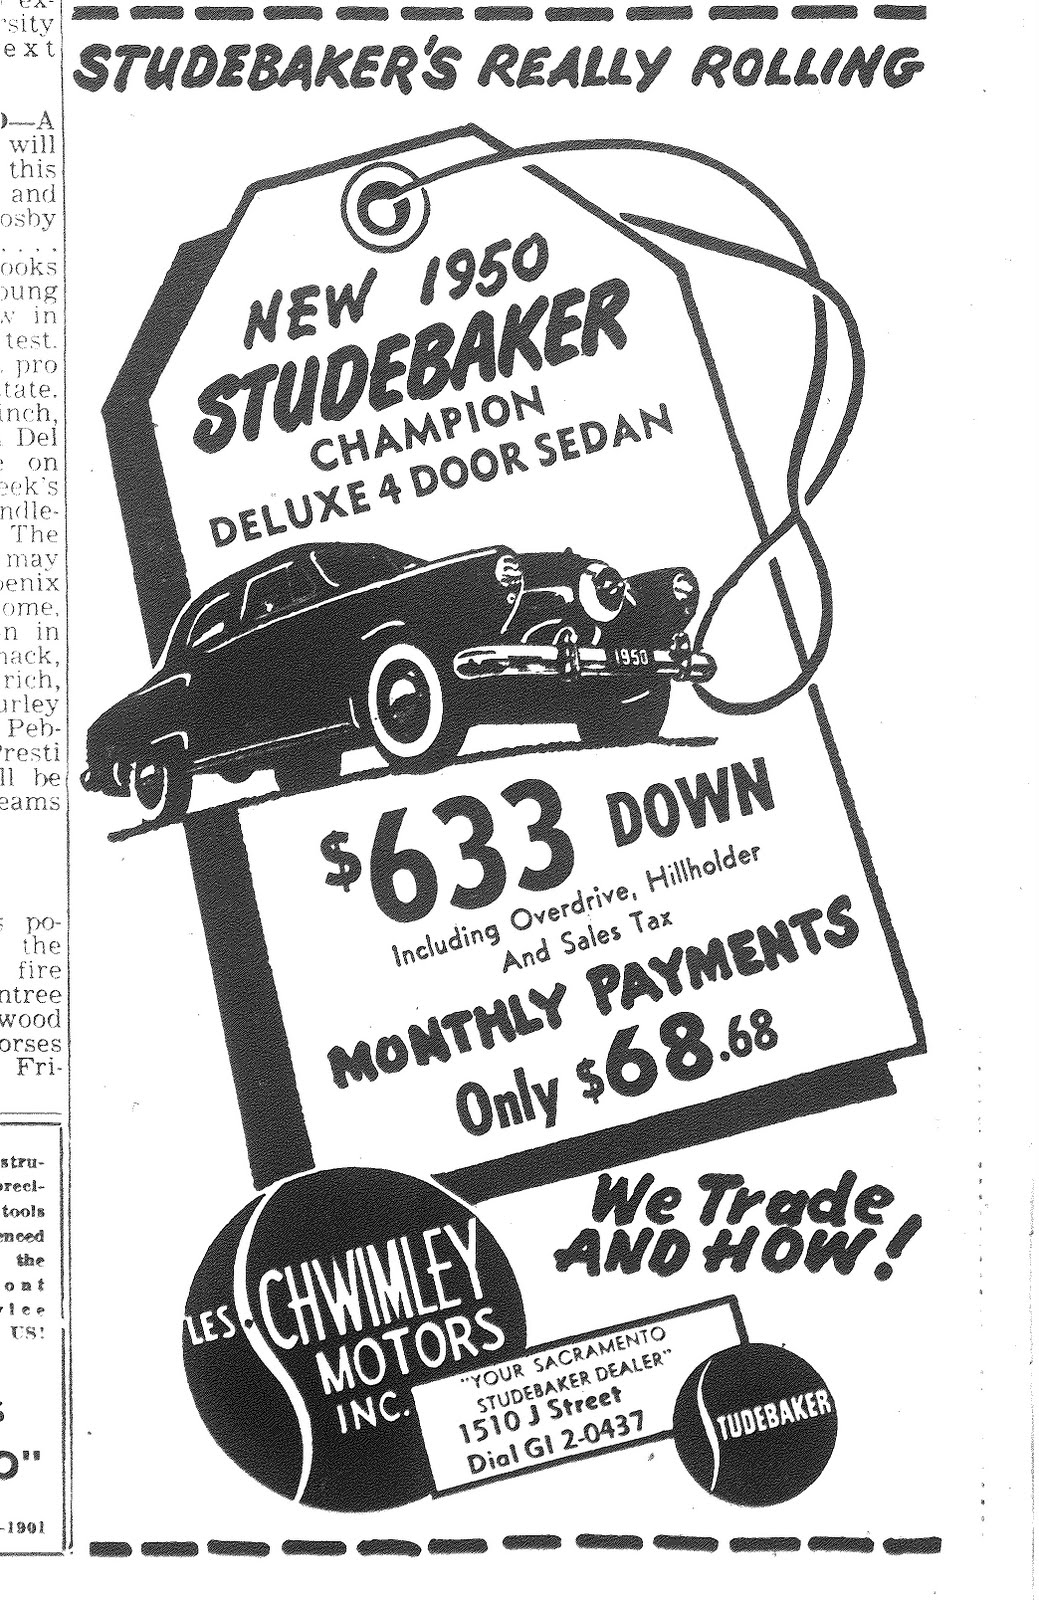 Bob's Studebaker Resource Website Studebaker Dealer Listing